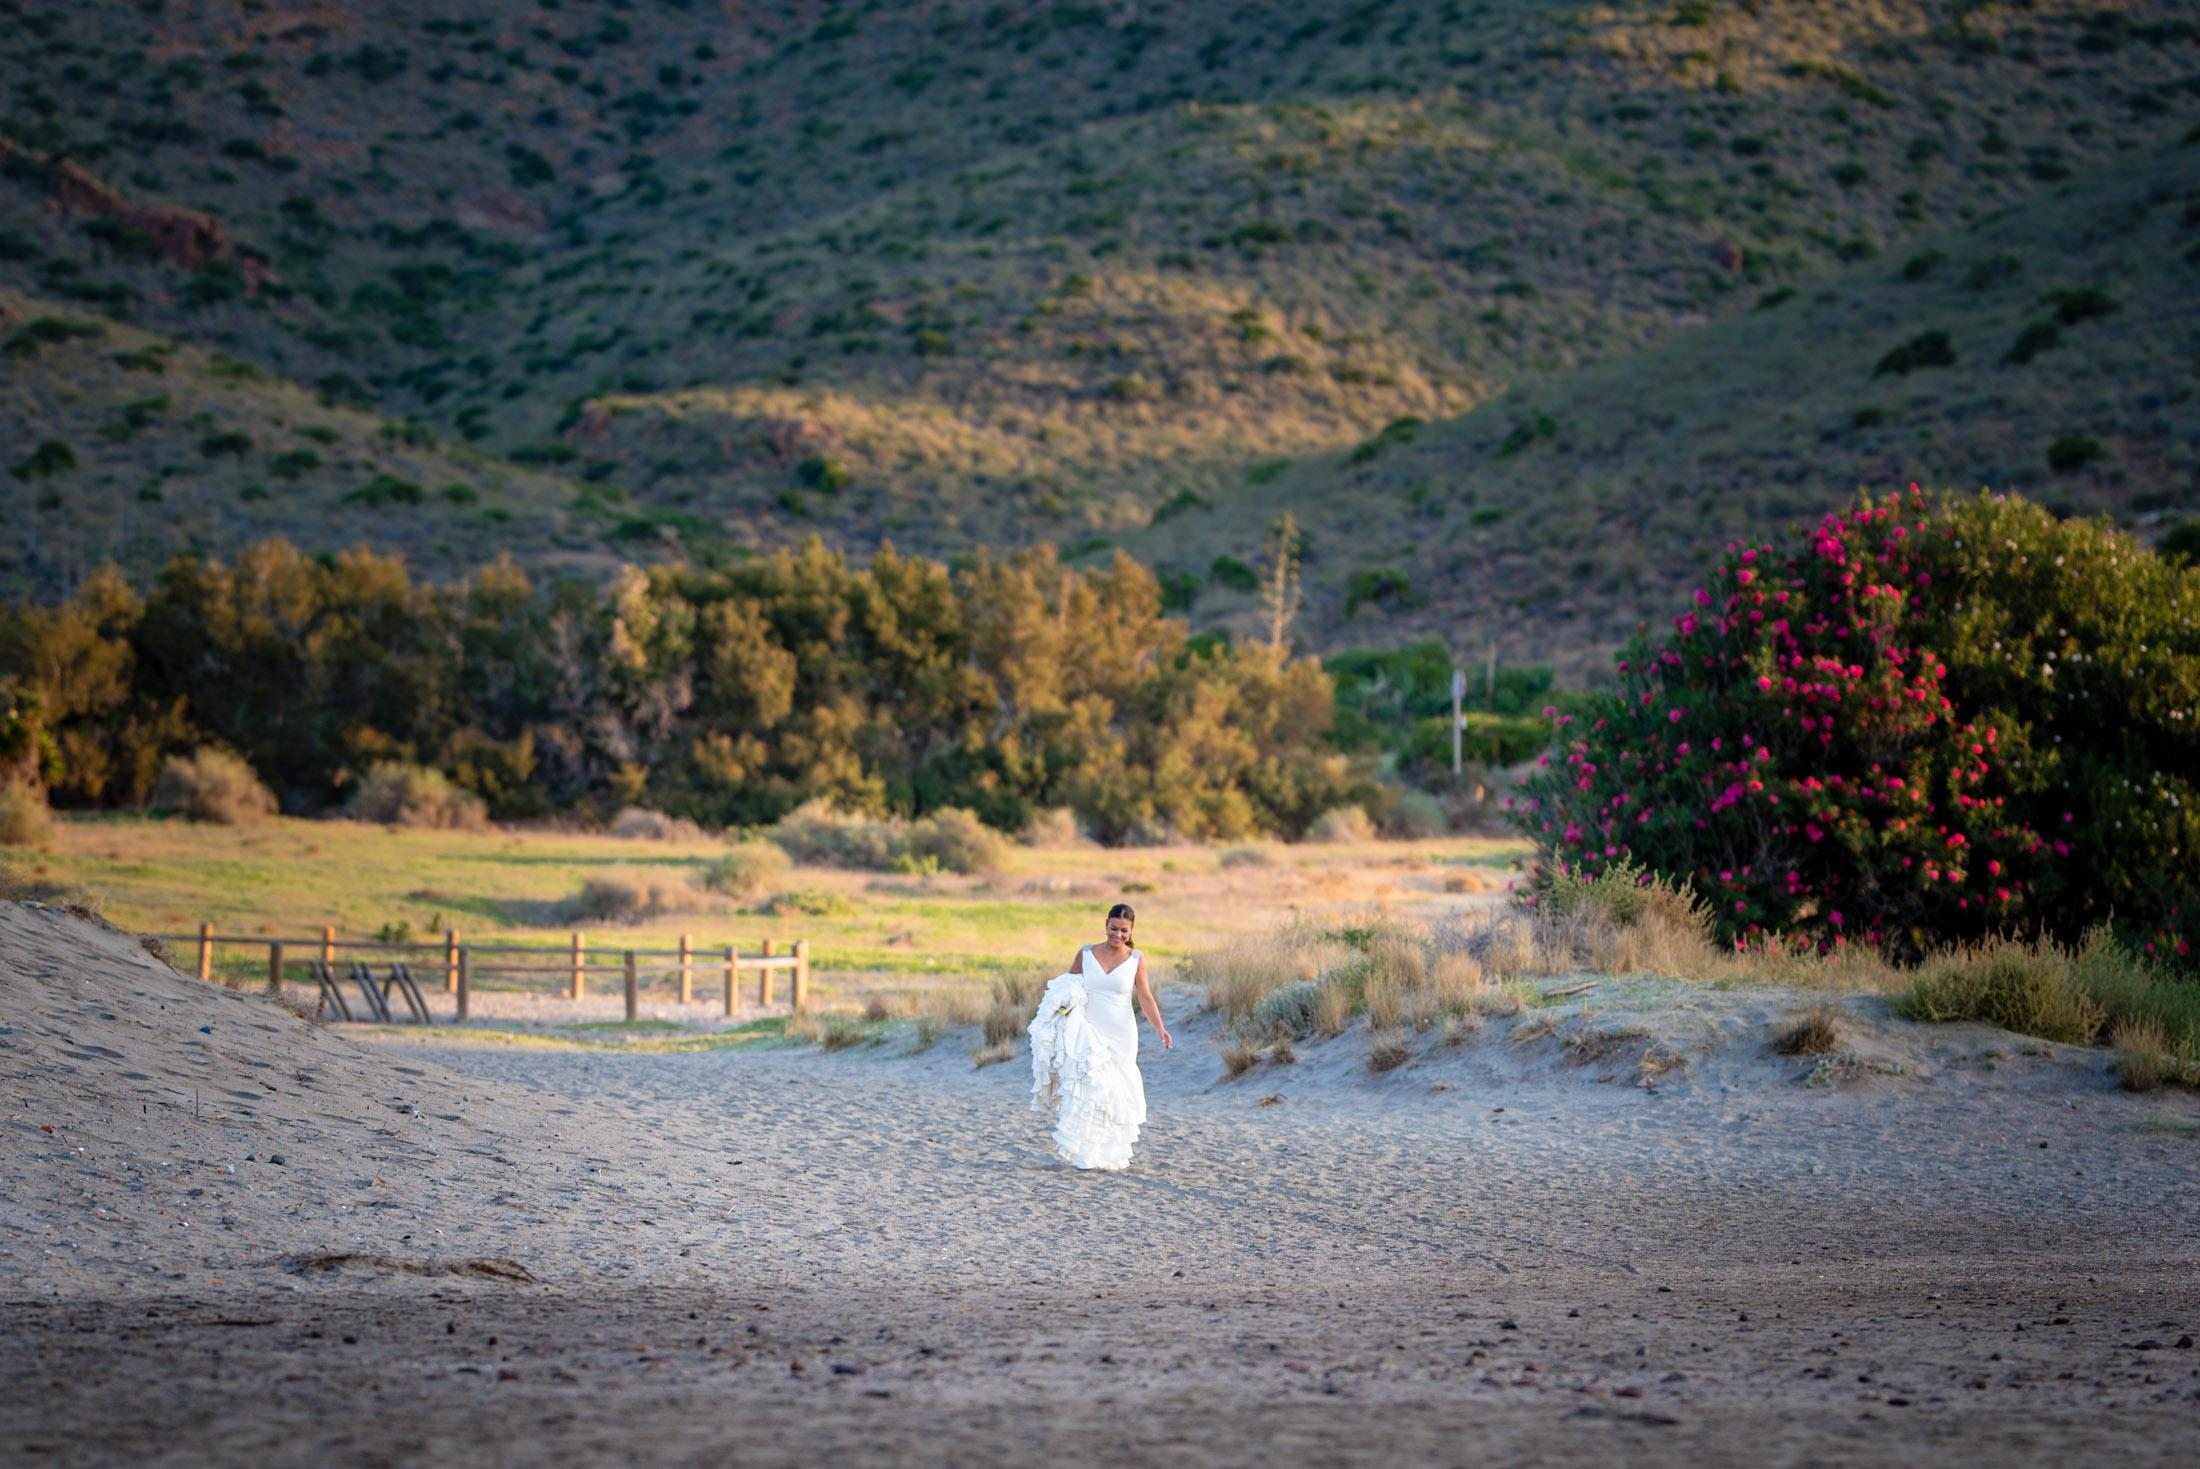 ost Boda en la playa de Monsul 01